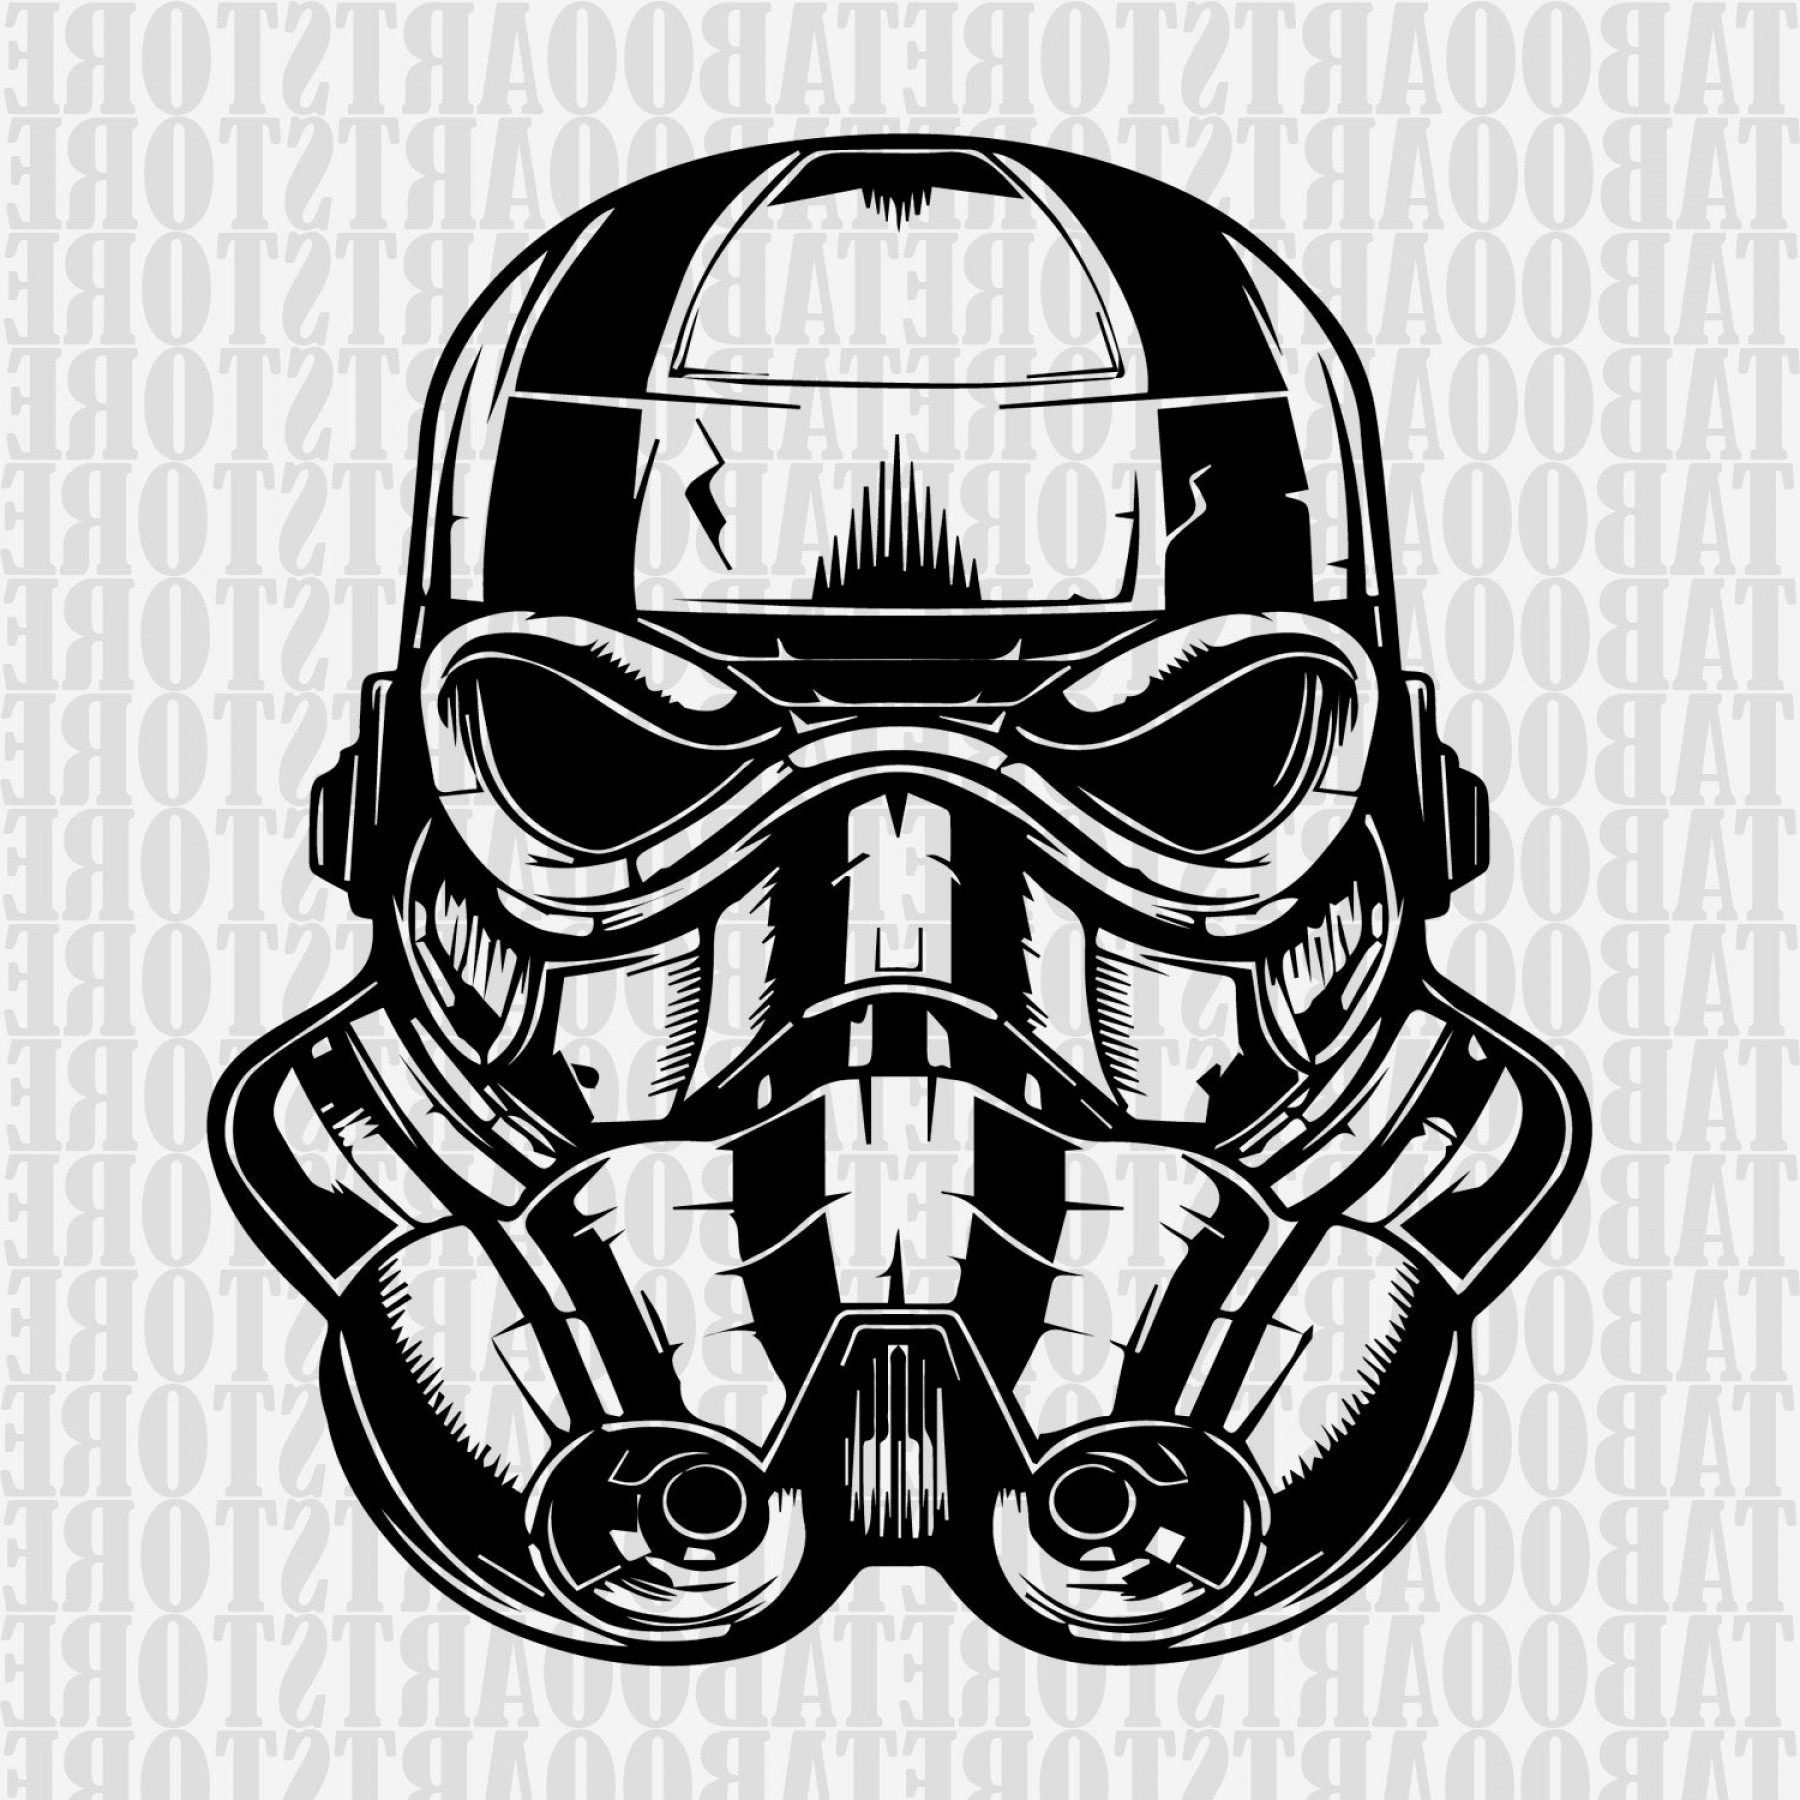 Boba Fett Silhouette Vector: Star Wars Clipart Stormtrooper Svg Star